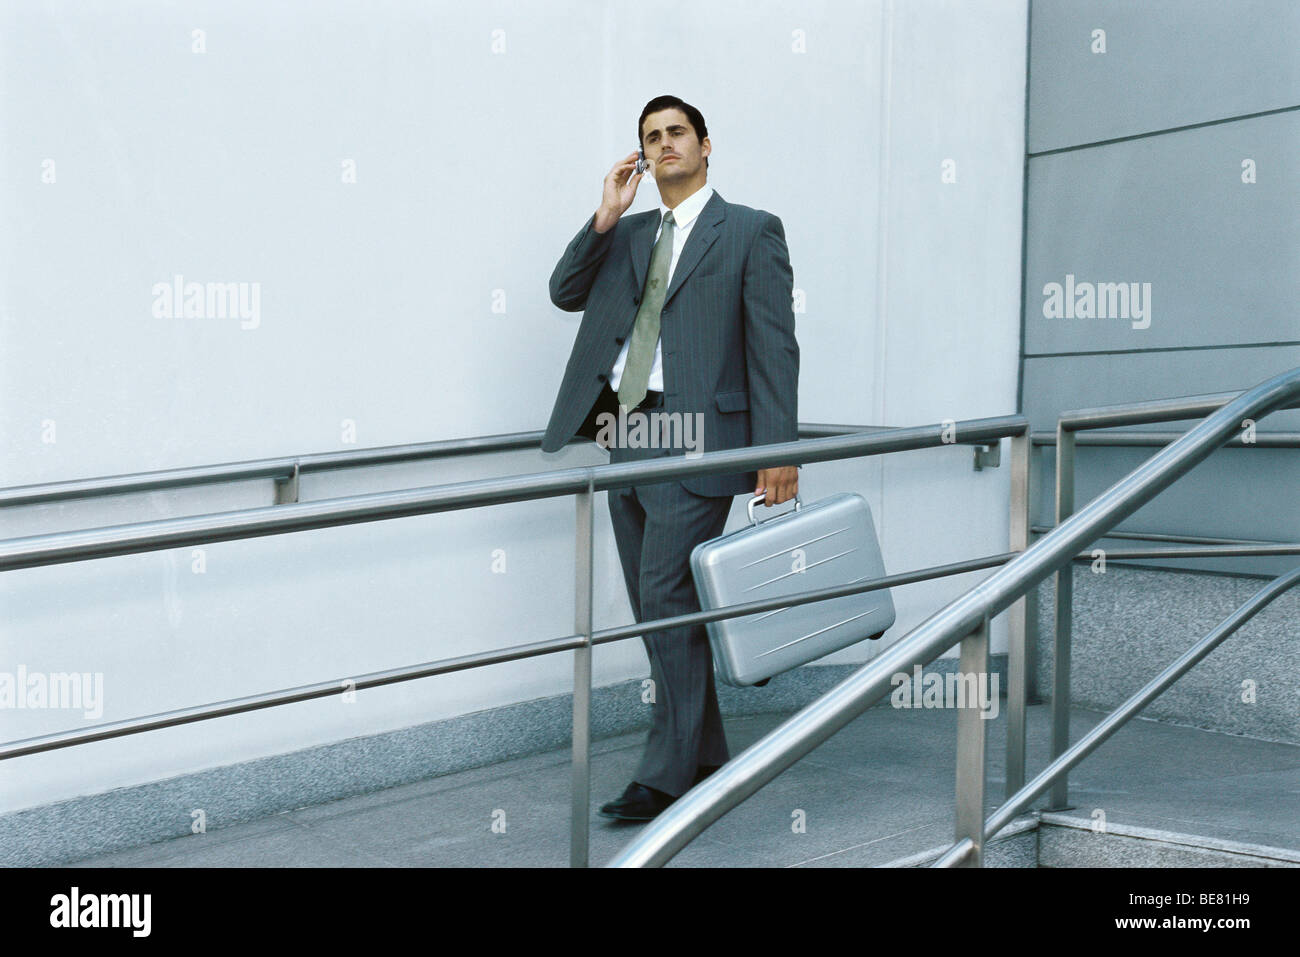 Businessman walking on sidewalk using cell phone, carrying briefcase - Stock Image